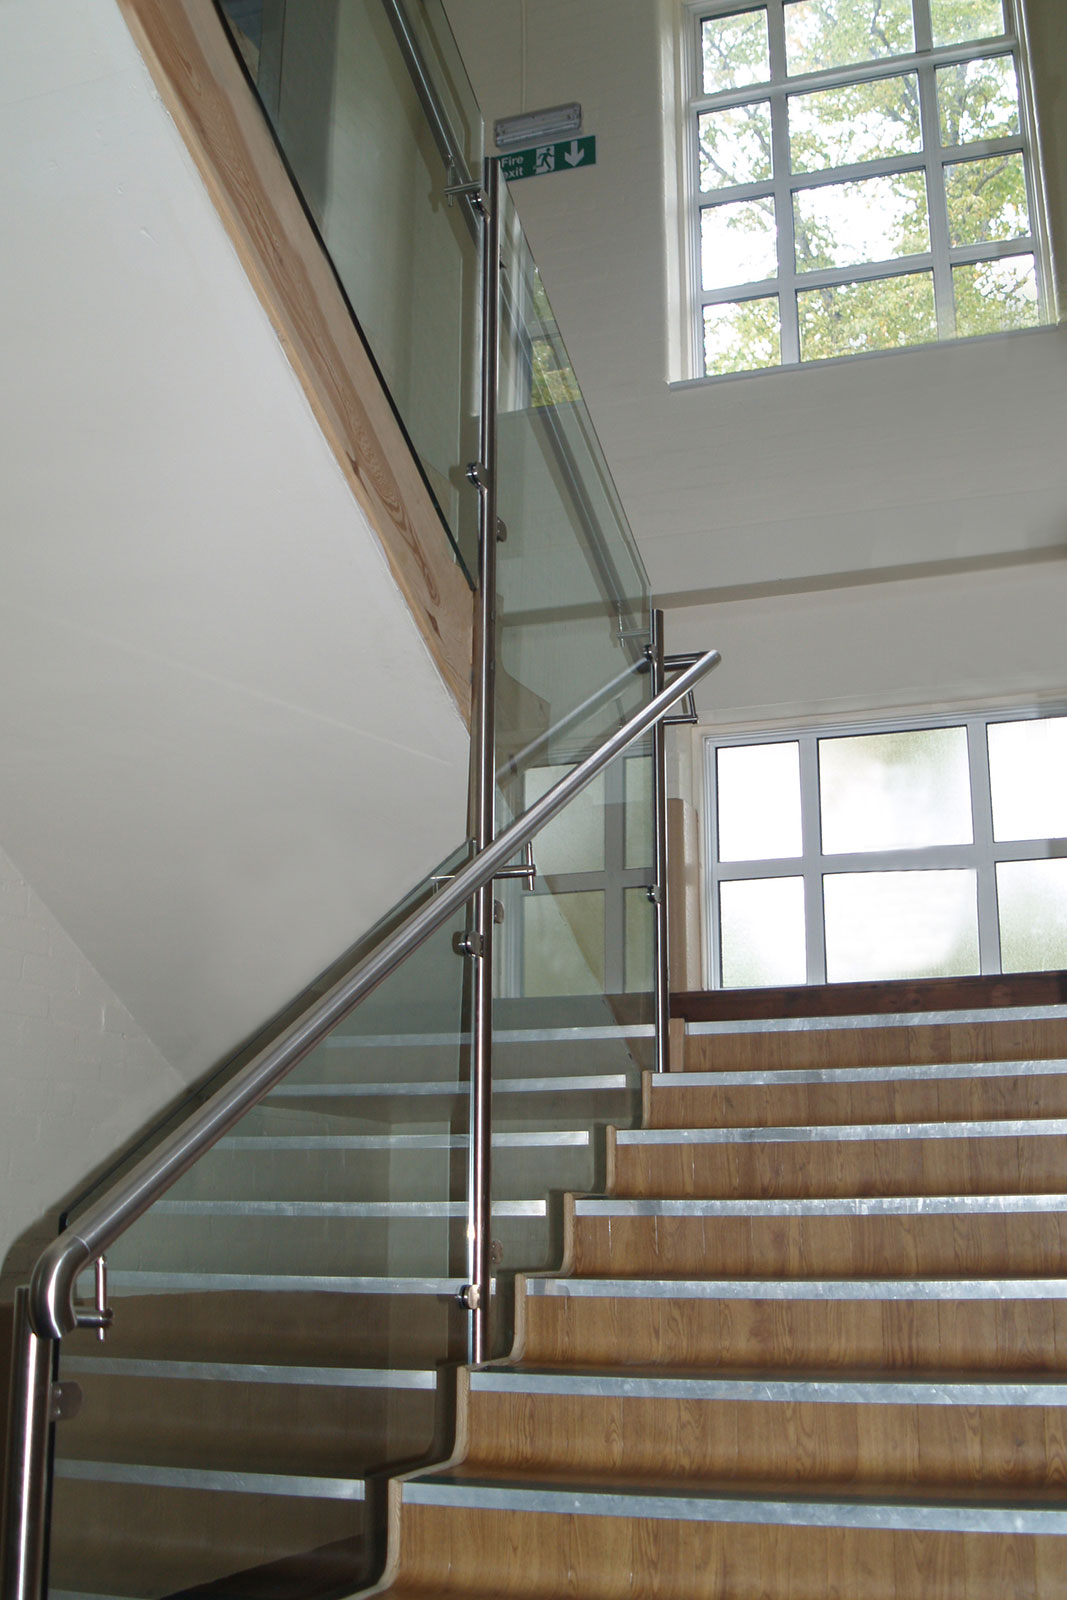 Post & Rail Glass Balustrades, Windsor Boys' School